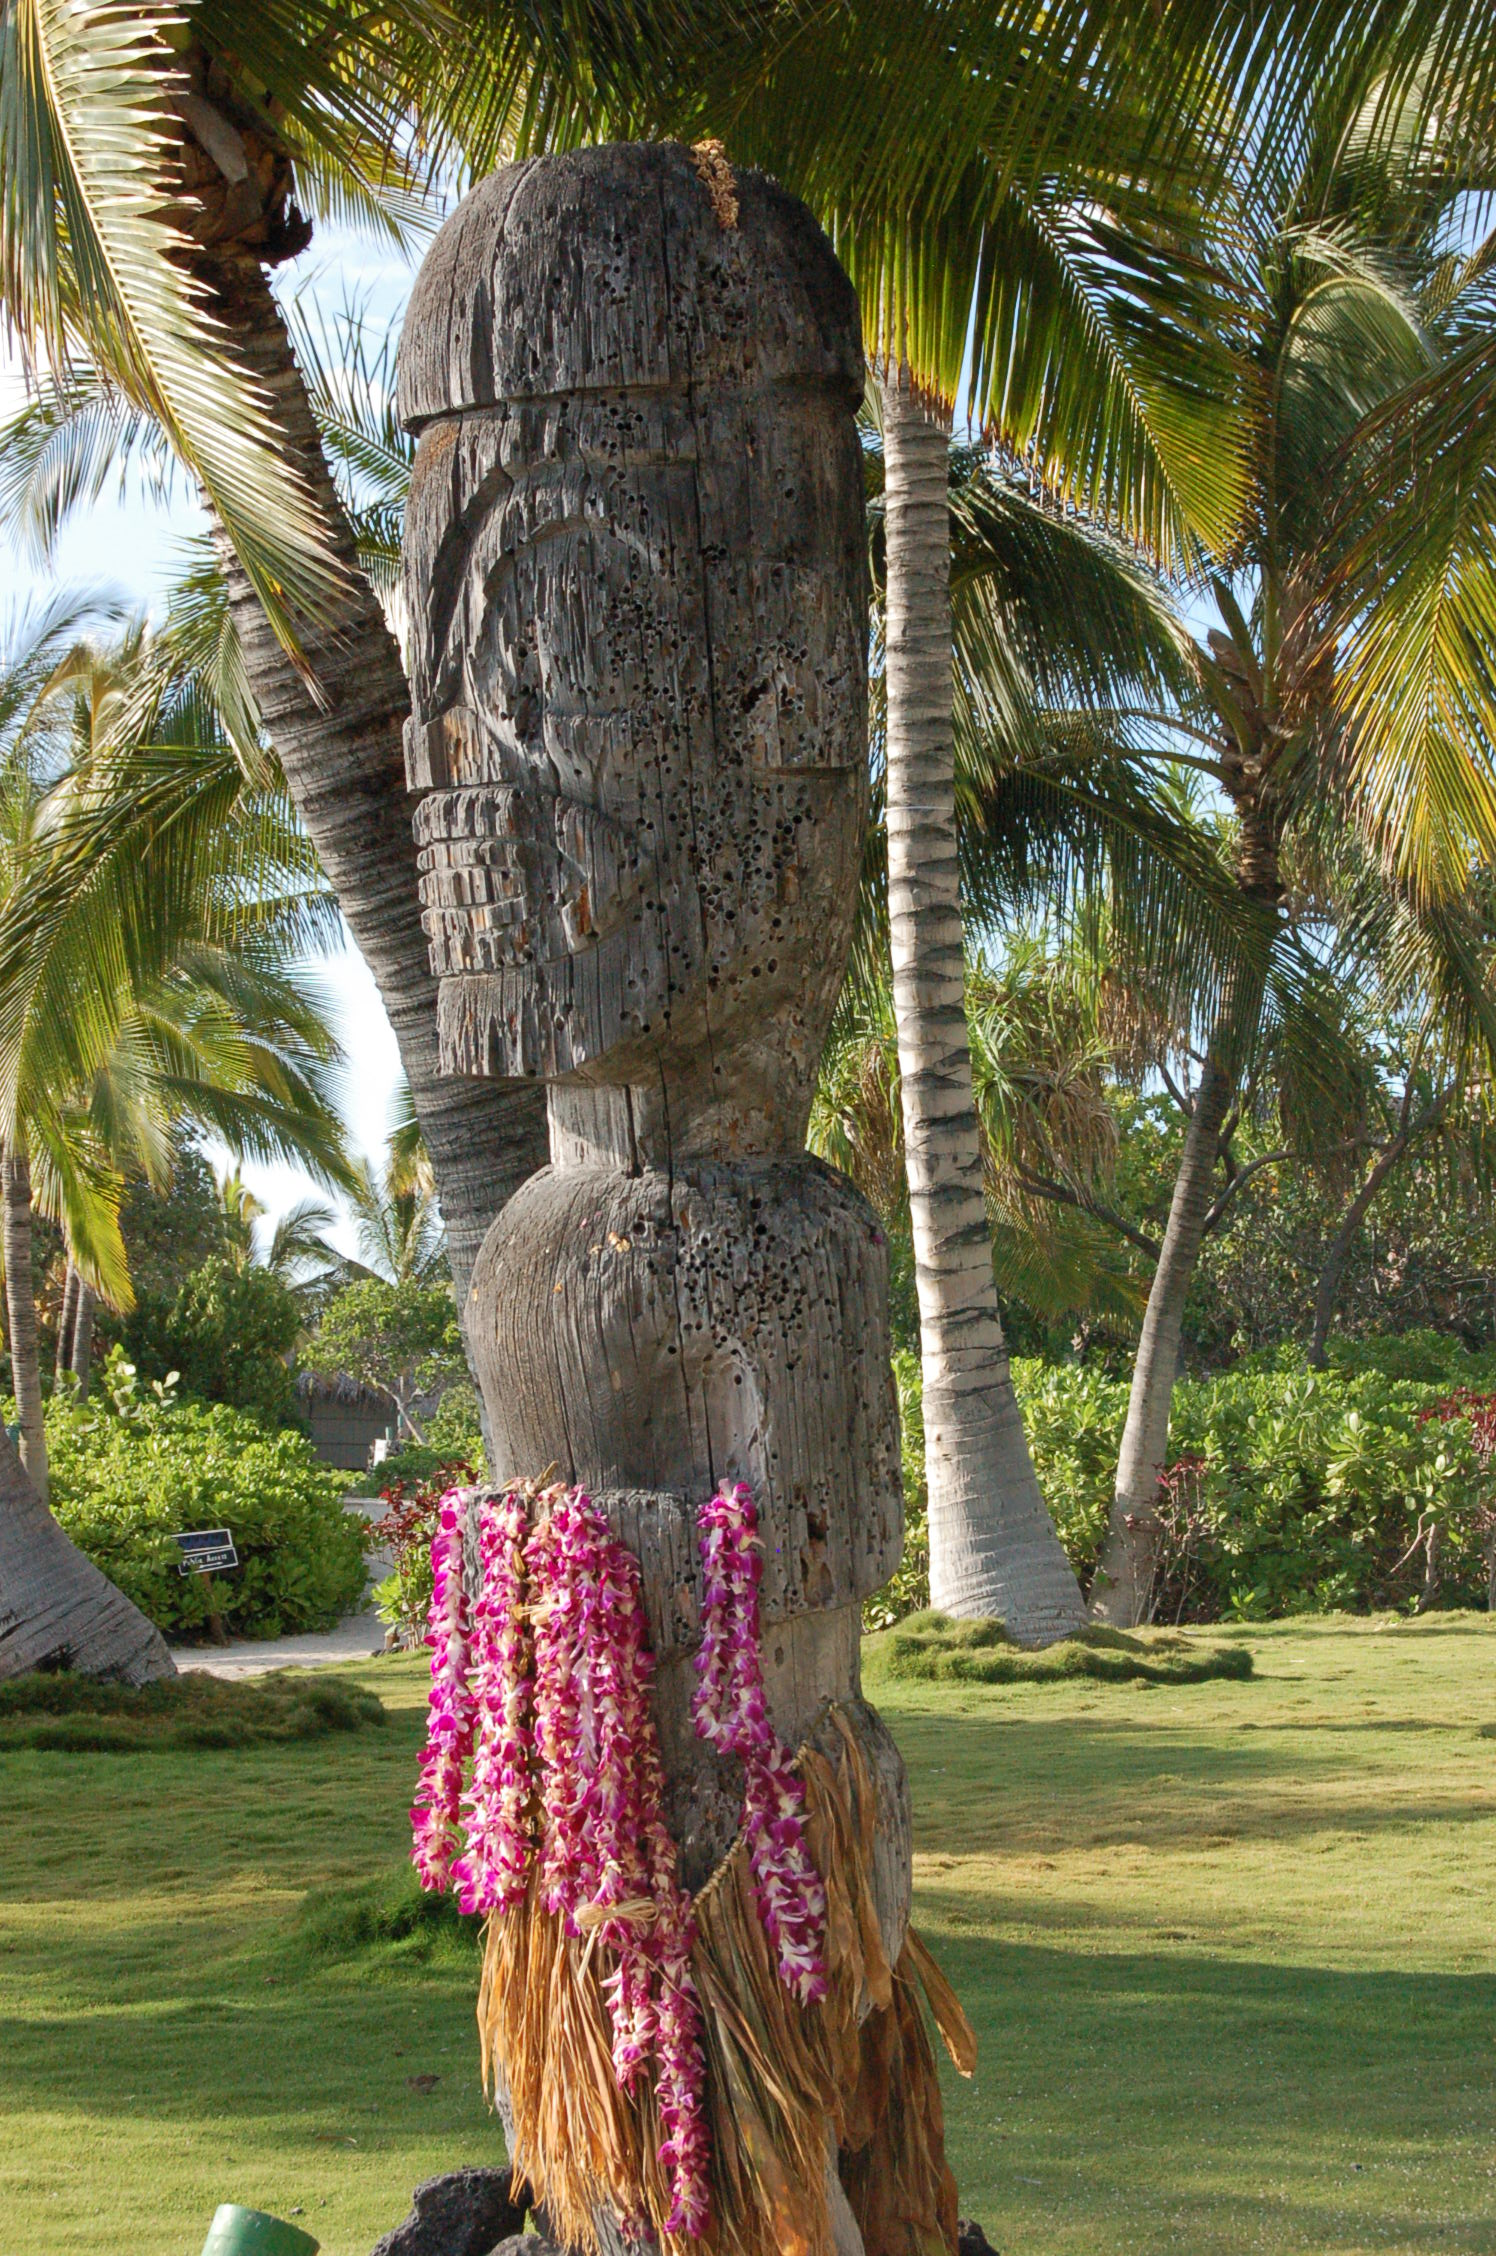 On our last night at Kona Village, we hung our leis this statue.